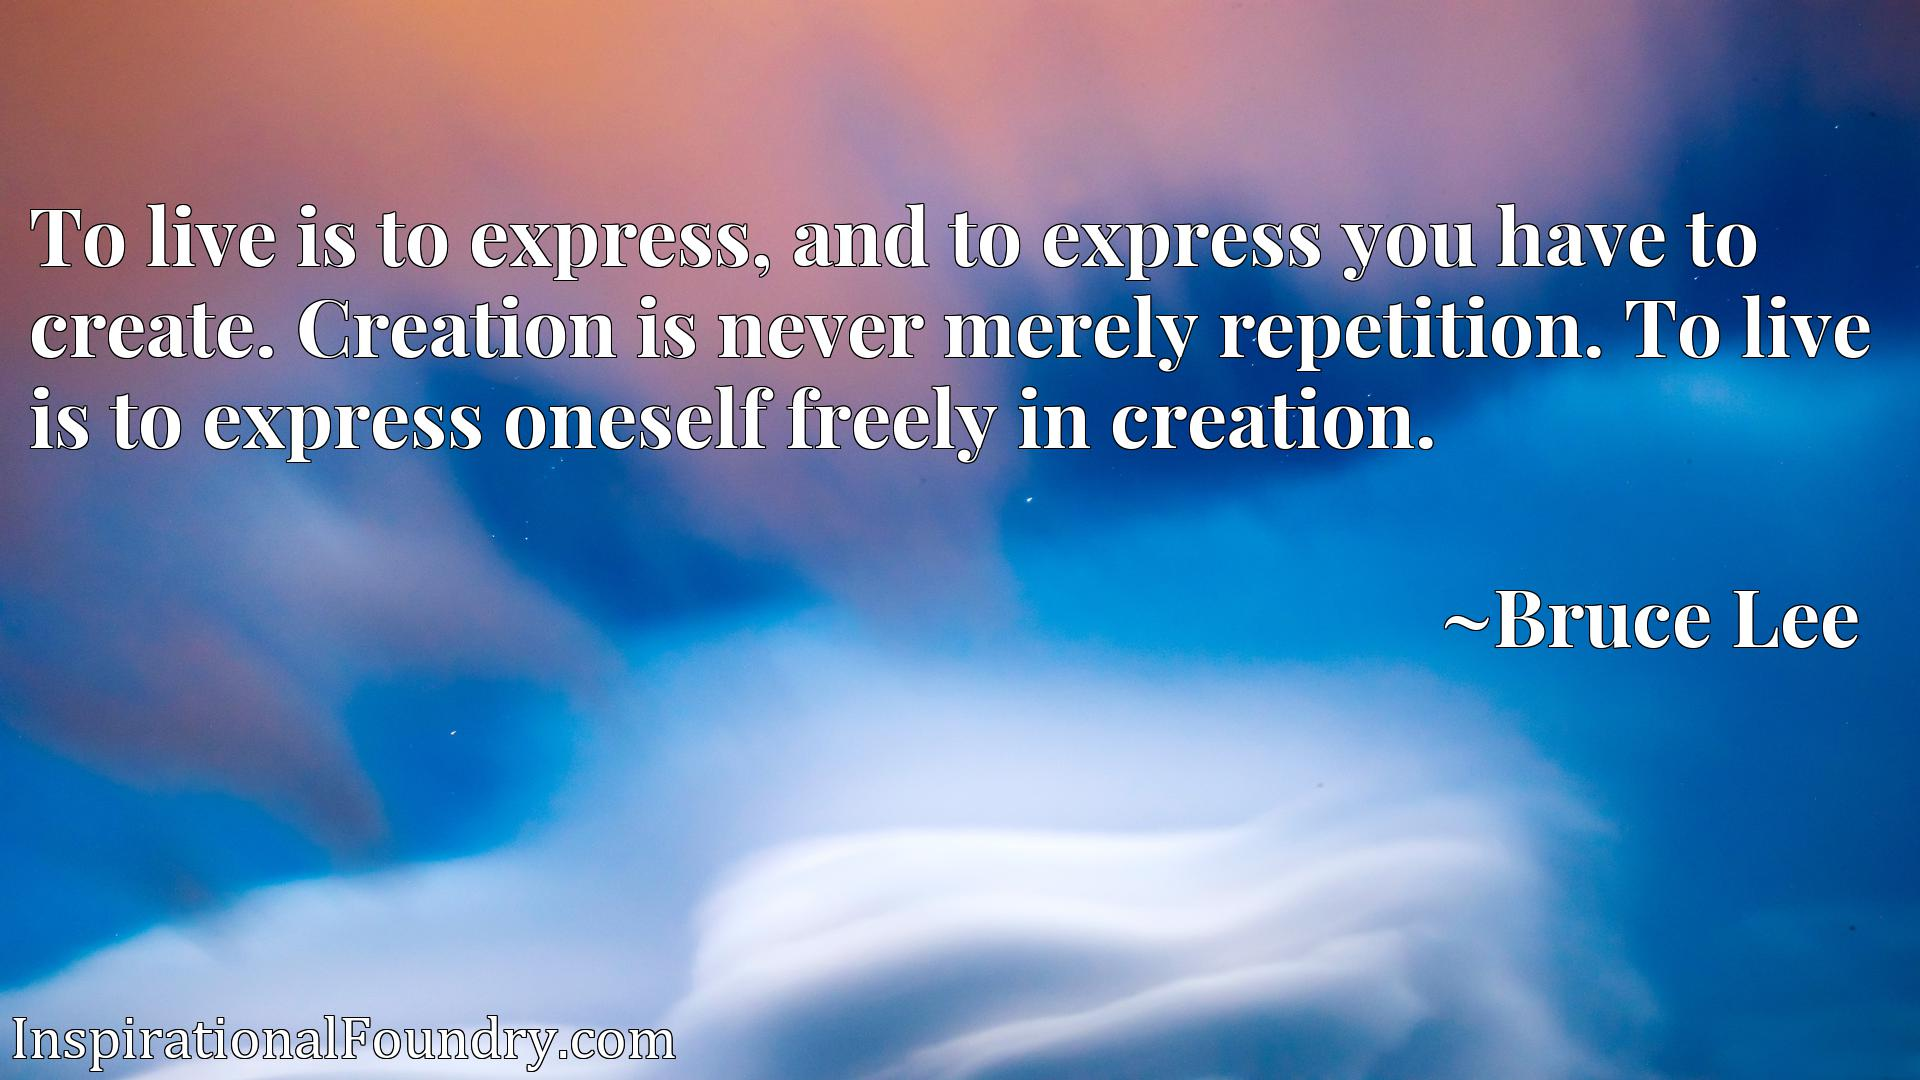 To live is to express, and to express you have to create. Creation is never merely repetition. To live is to express oneself freely in creation.